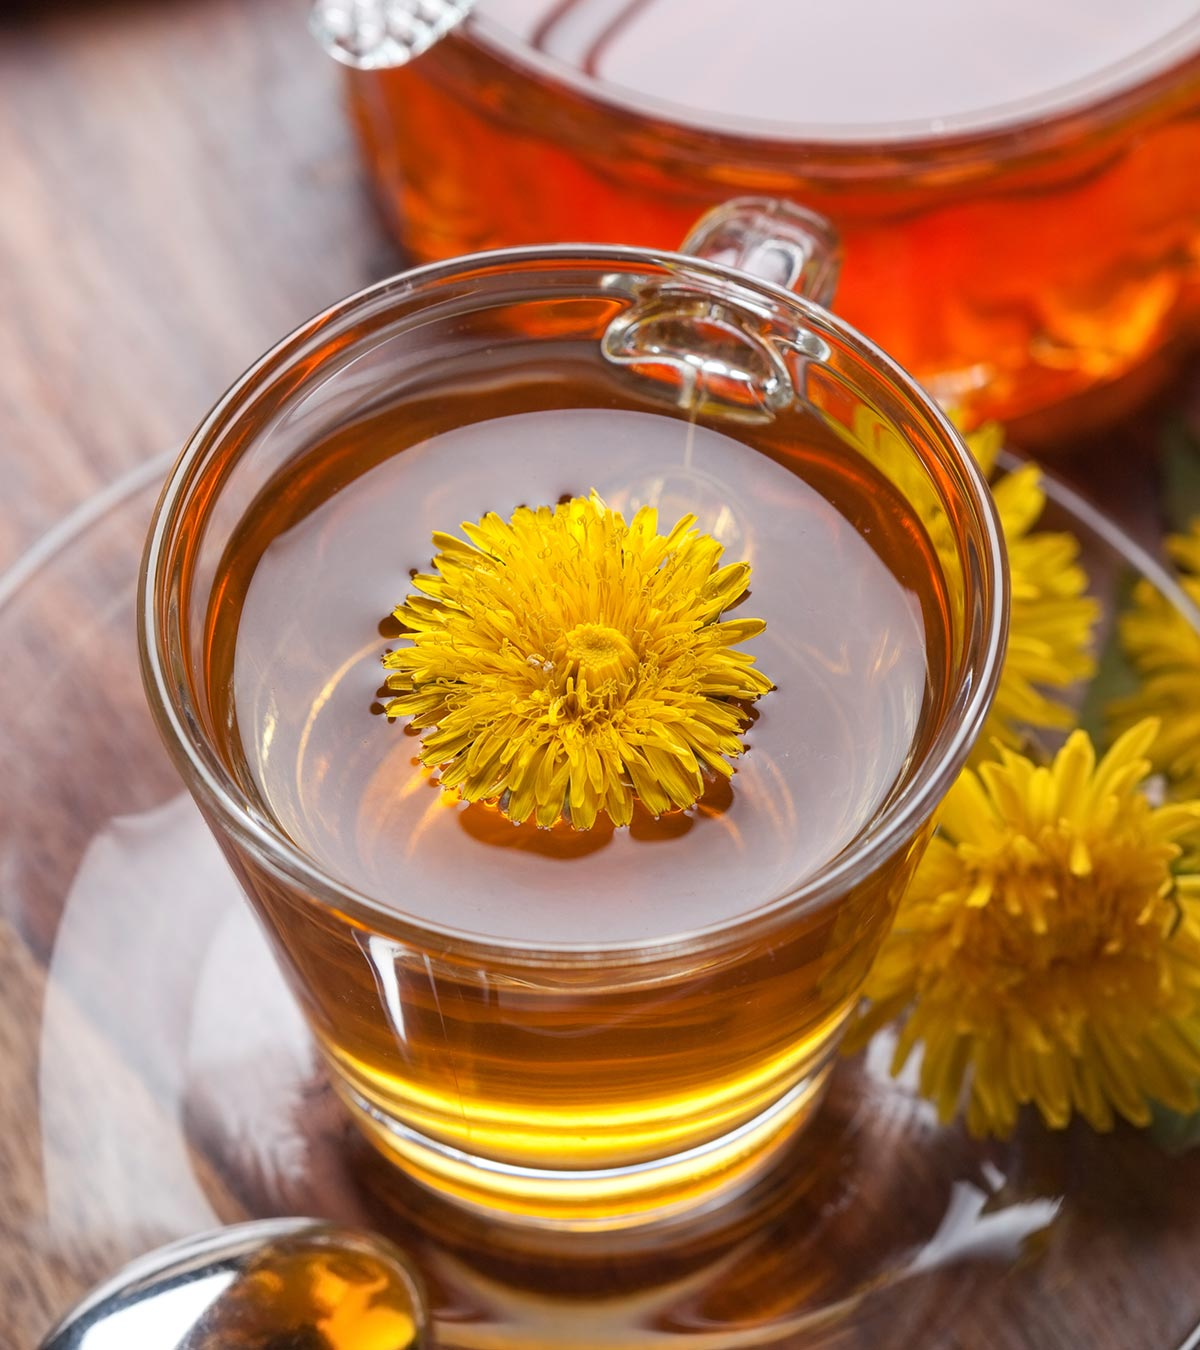 Is It Safe To Take Dandelion Tea During Pregnancy?